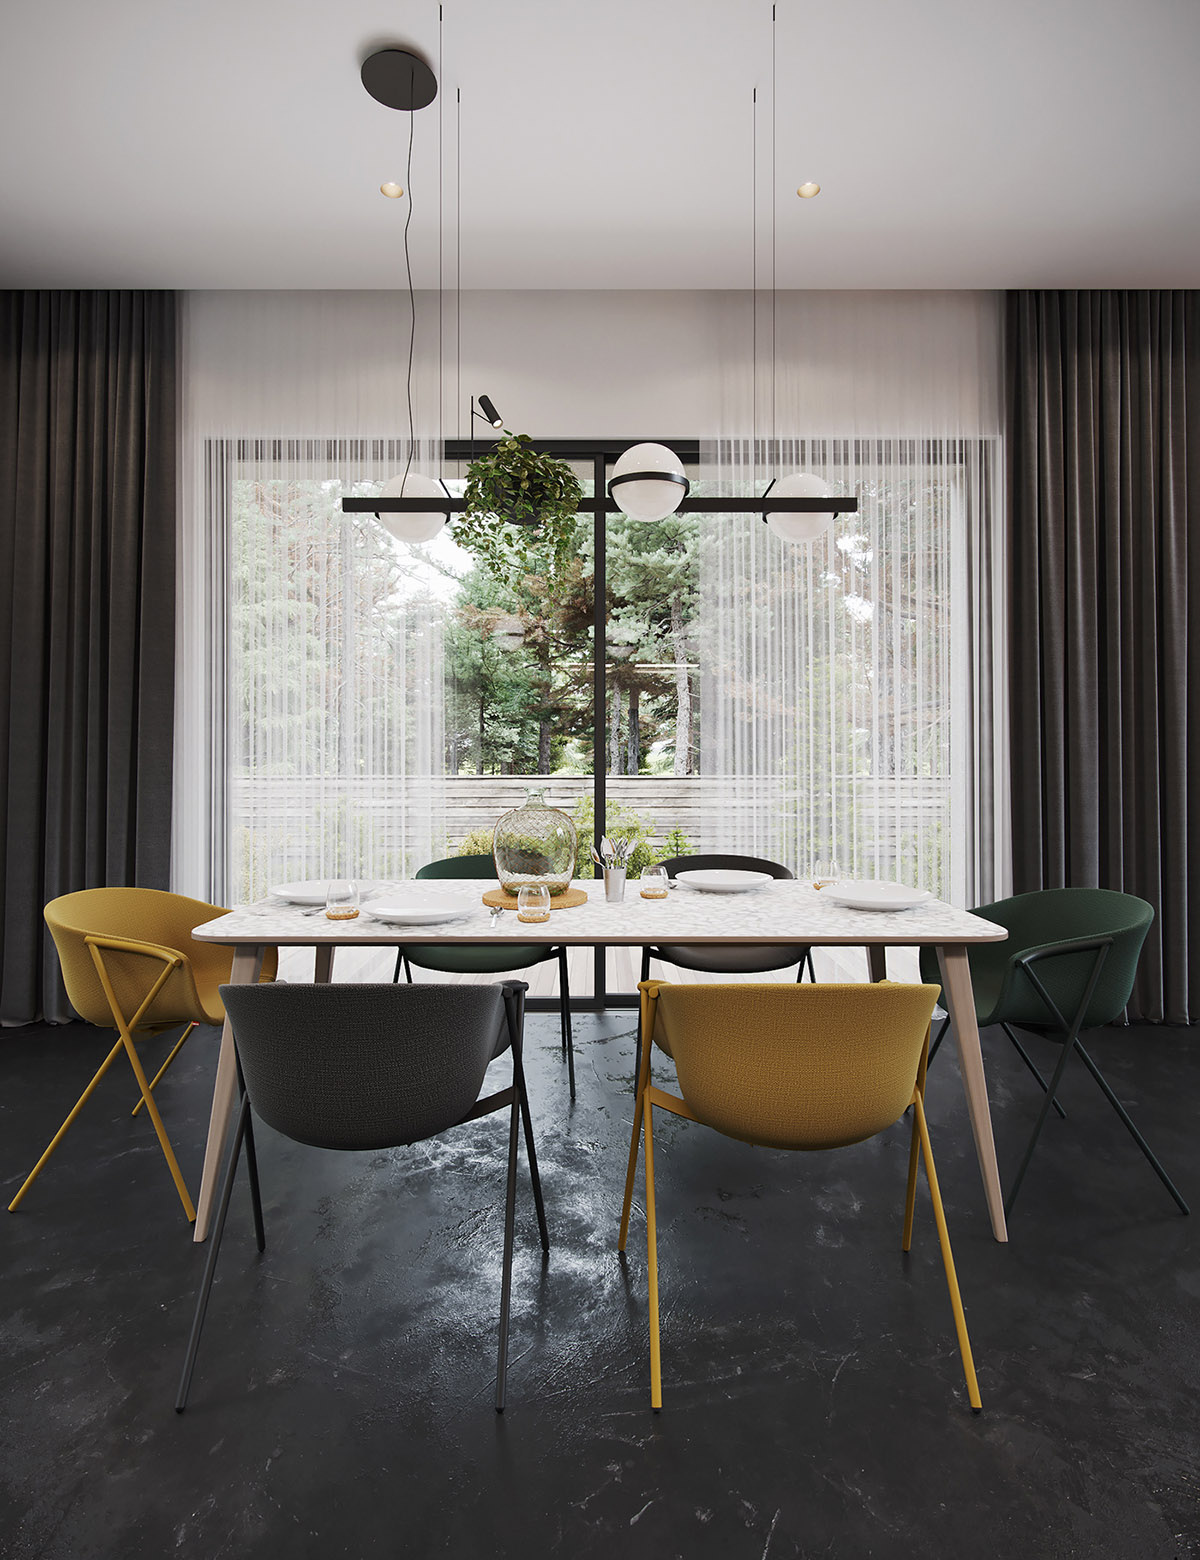 Black Decor With Colourful Accents images 4